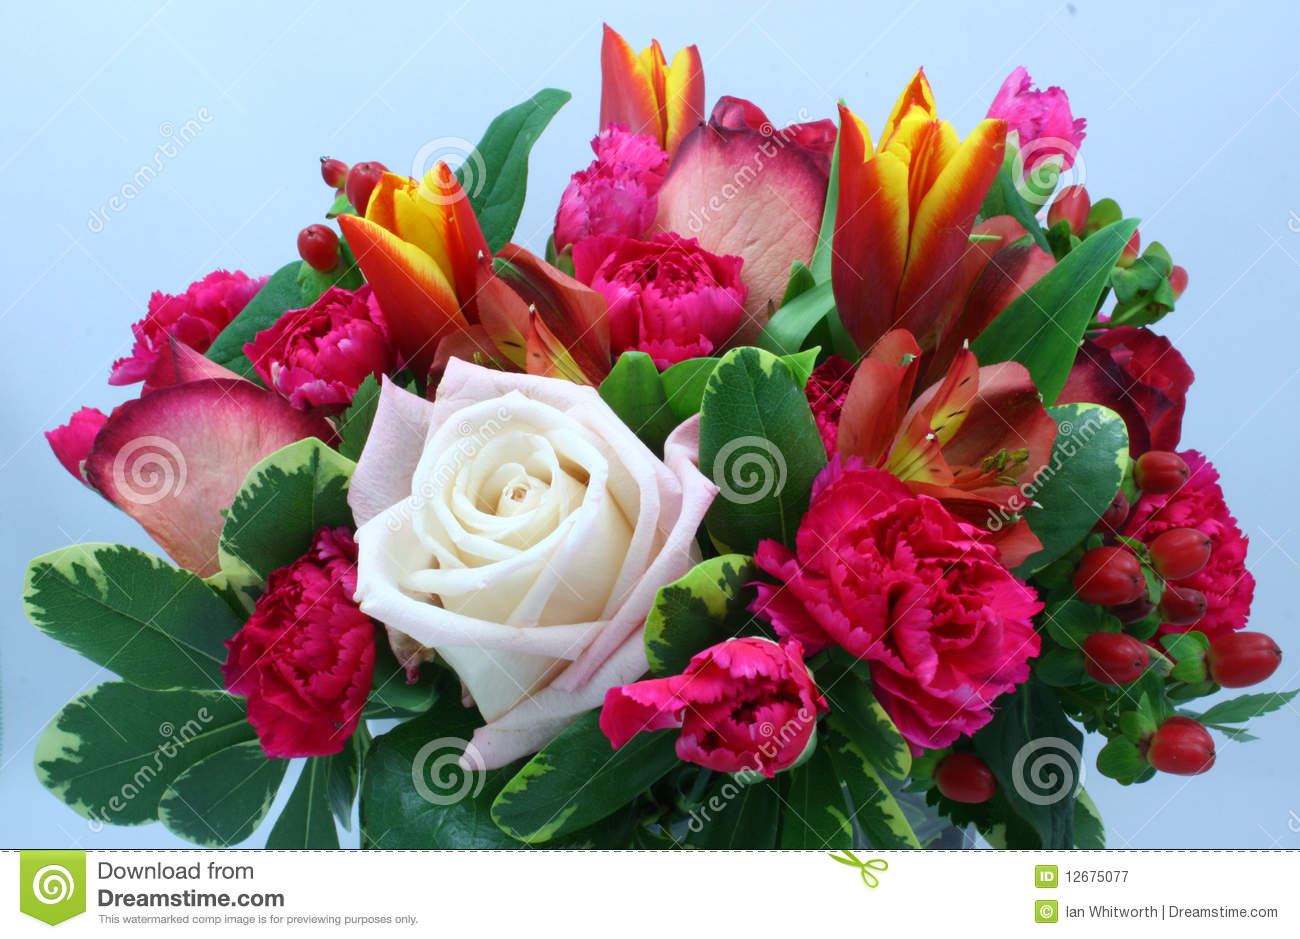 Flower Arrangement Royalty Free Stock Images.